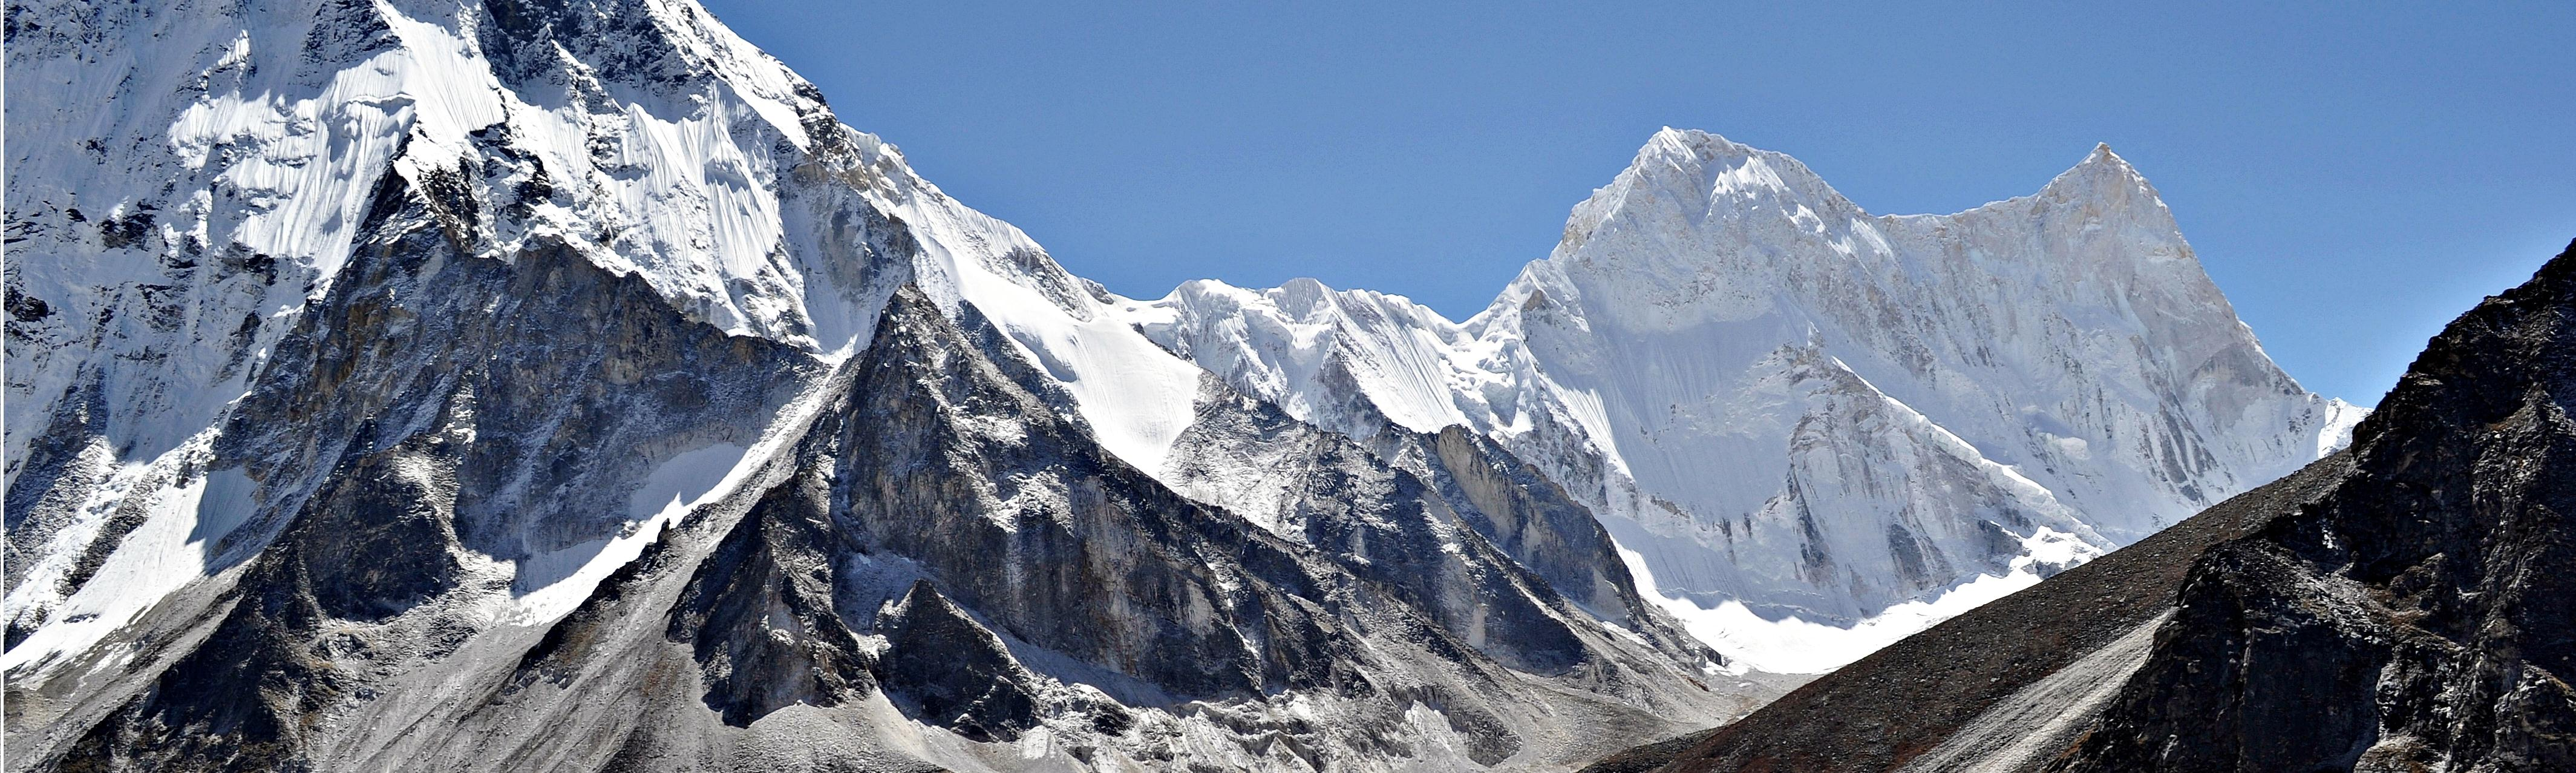 Mt. Changabang Peak Expeditions in India